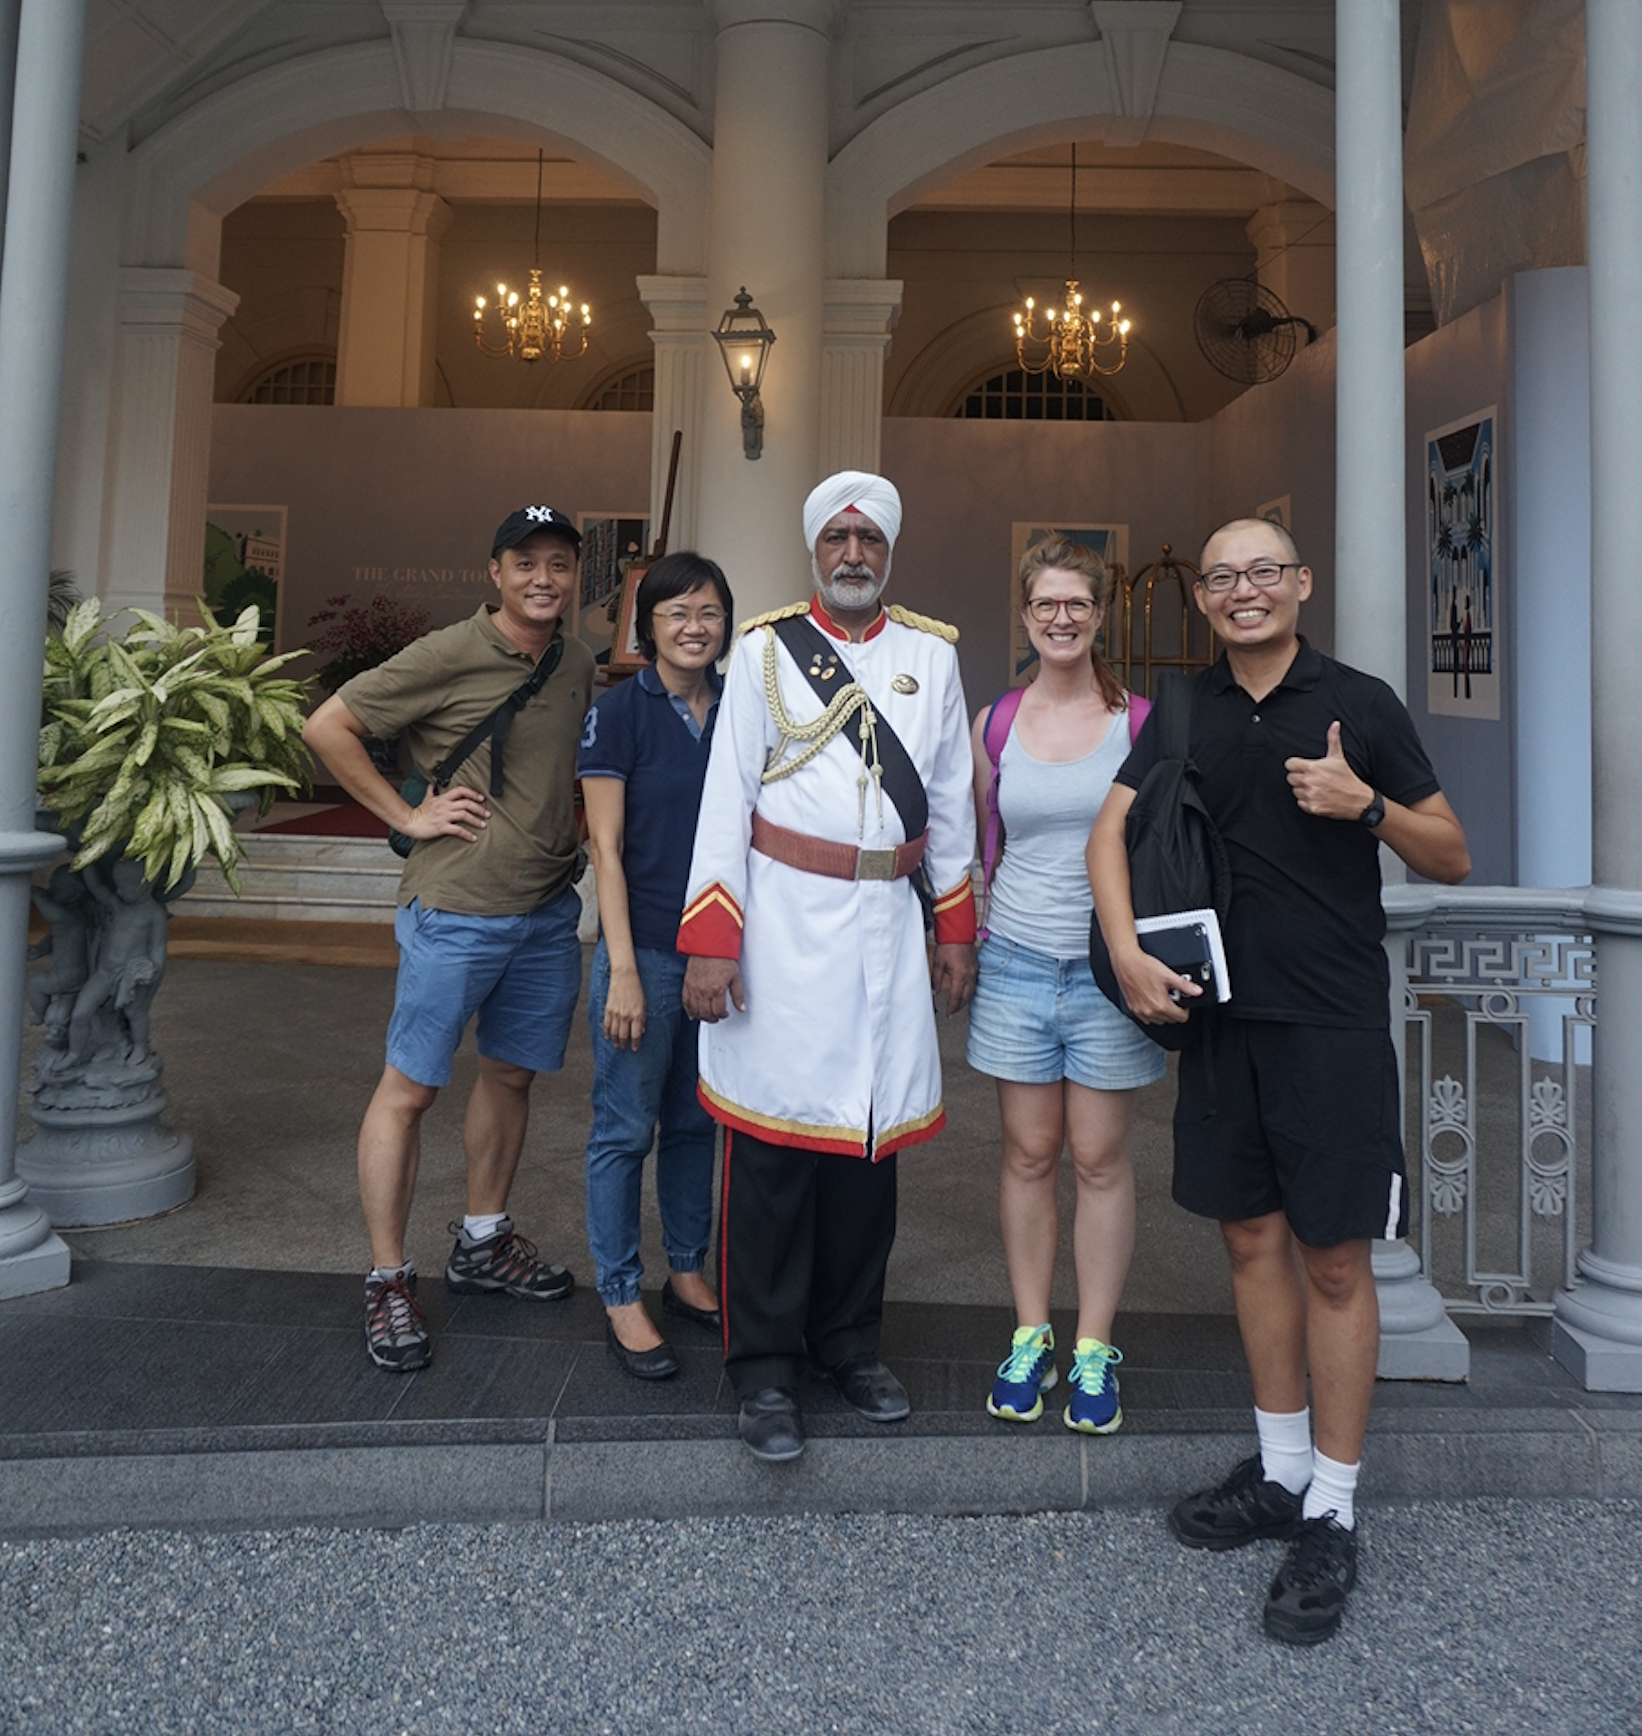 ask your singapore tourist guide about this gentleman